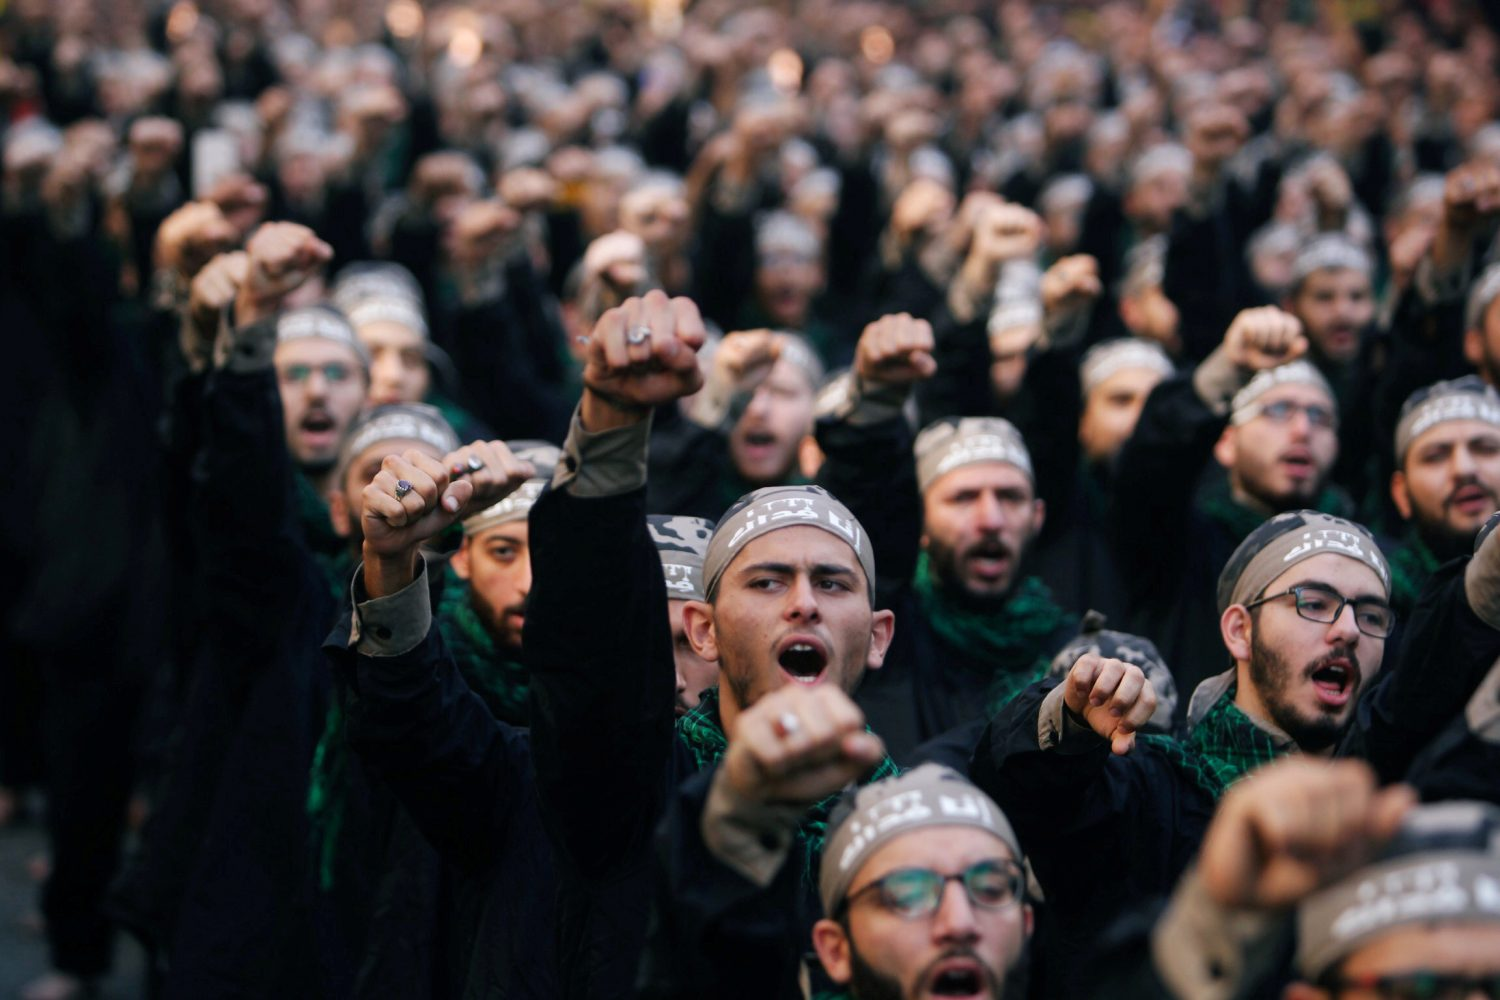 FILE PHOTO: Lebanon's Hezbollah supporters chant slogans during last day of Ashura, in Beirut, Lebanon September 20, 2018. REUTERS/Aziz Taher/File Photo